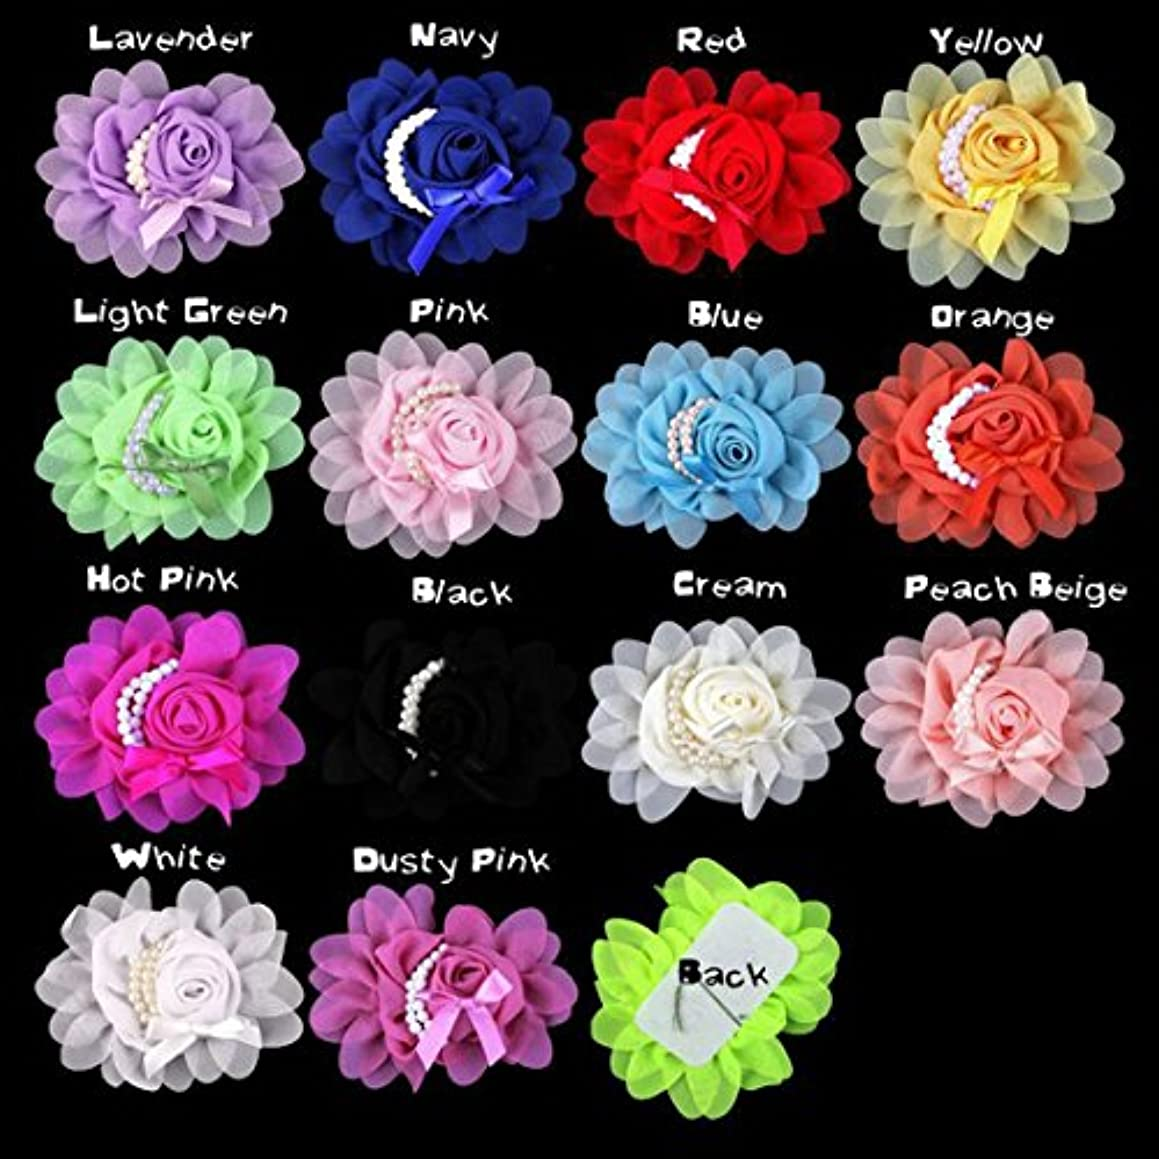 EMAXELER Mixed Random Colors Flat-bottomed Beautiful DIY Handmade Decorative Pearl Bowknot Wedding Flowers for Headbands Hair Clips Scrapbooking Clothes and More Decoration 10 PCS Pearl Bowknot Flower